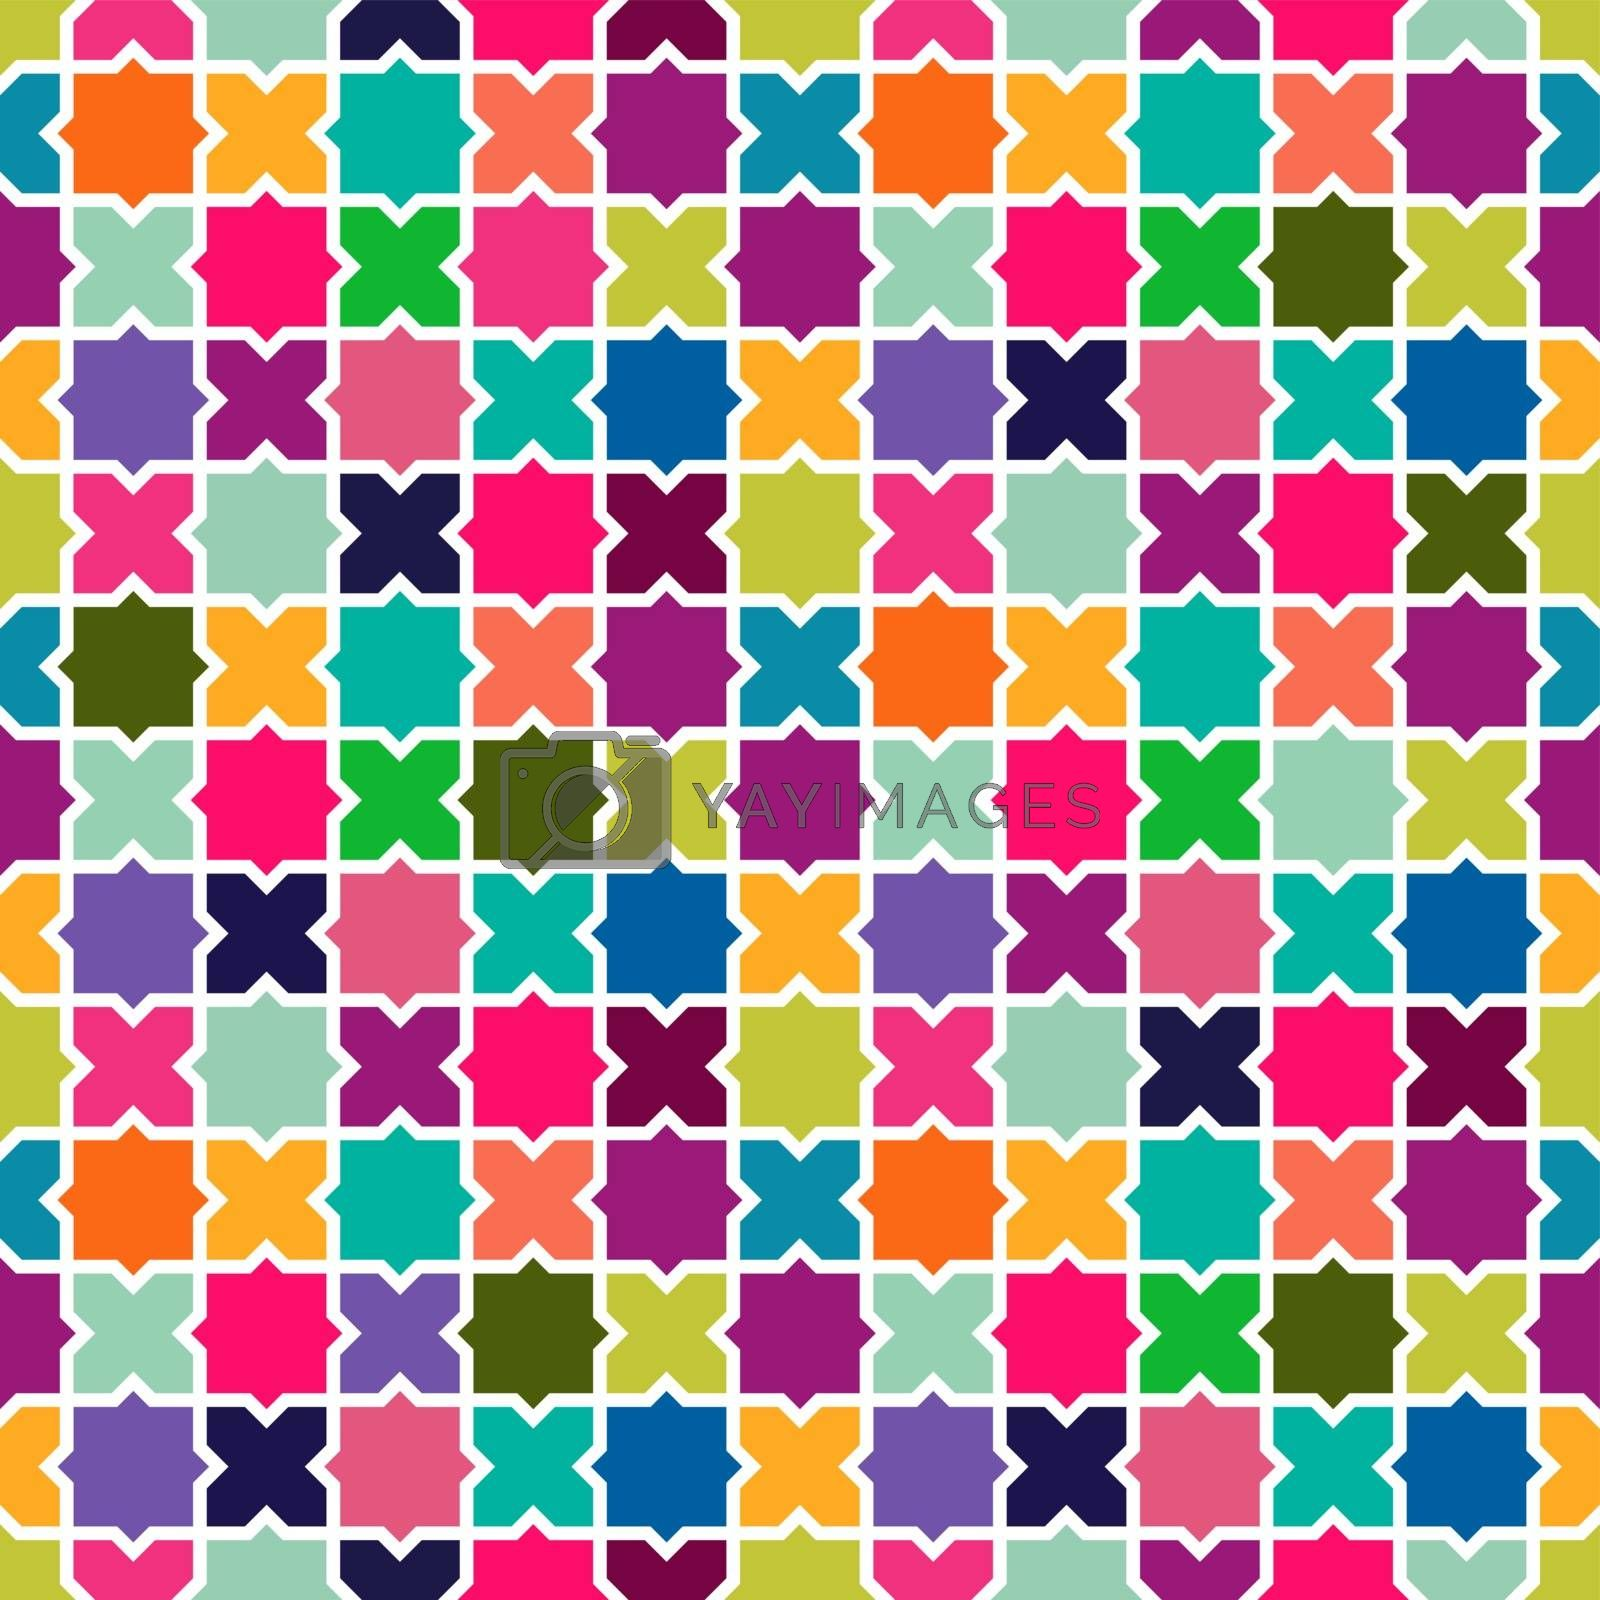 Abstract colorful mosaic pattern background by cienpies